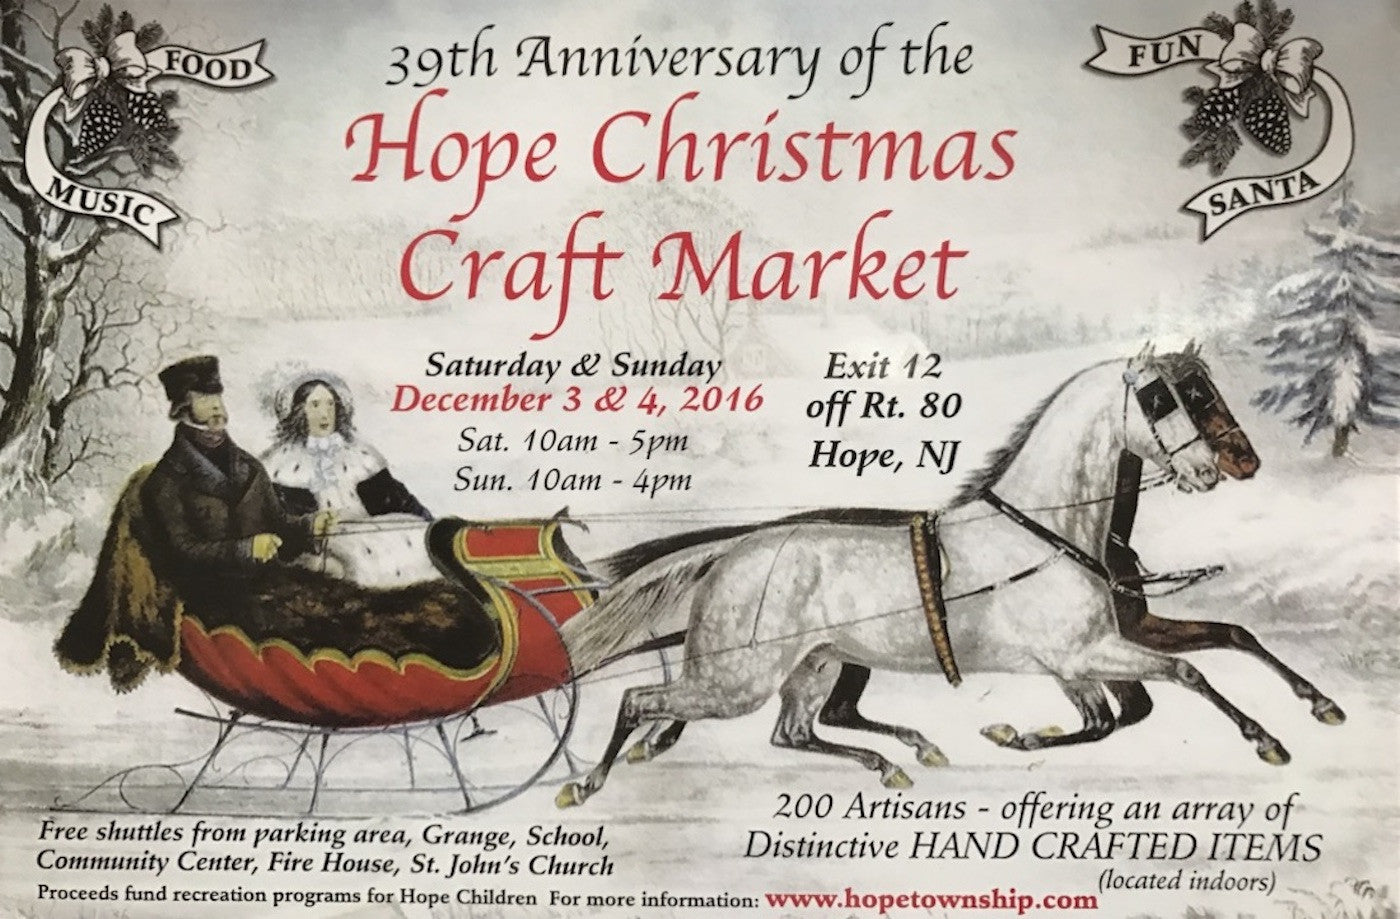 Come Visit us on December 3rd & 4th at the Hope Christmas Craft Market!